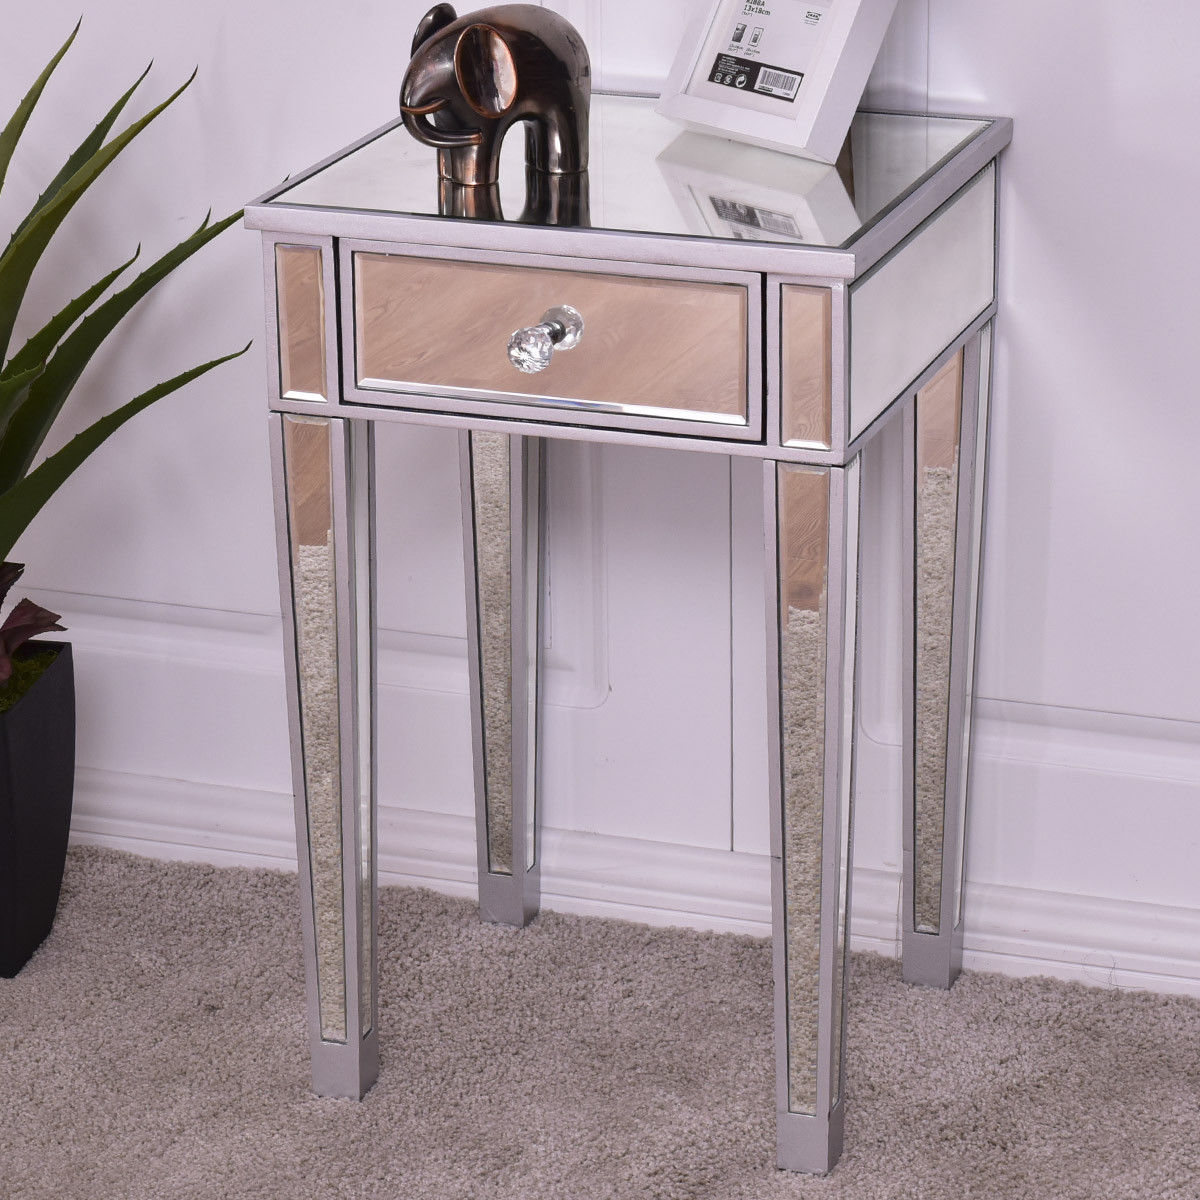 giantex mirrored accent table nightstand end luxury modern bedside storage cabinet with drawer coffee small lights battery operated ikea vanity living room shelves designer legs